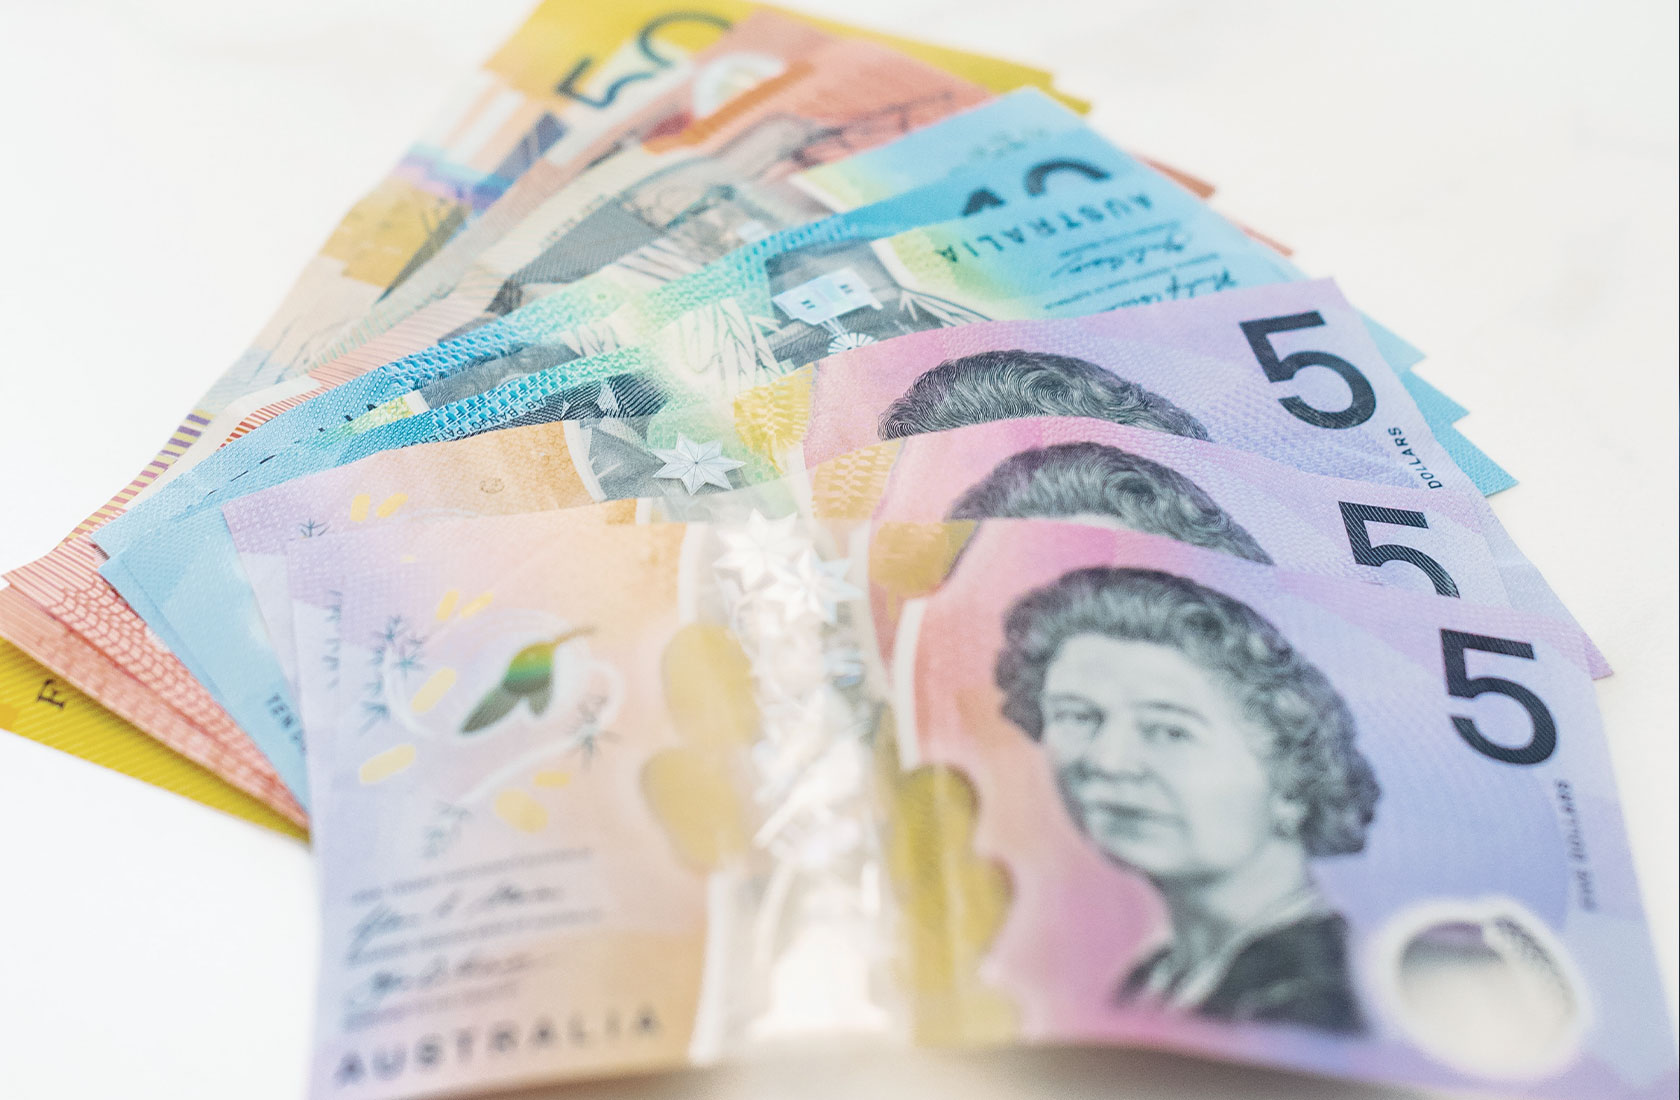 Australia's regulatory changes examined as legislation puts restrictions on the use of cash under the spotlight